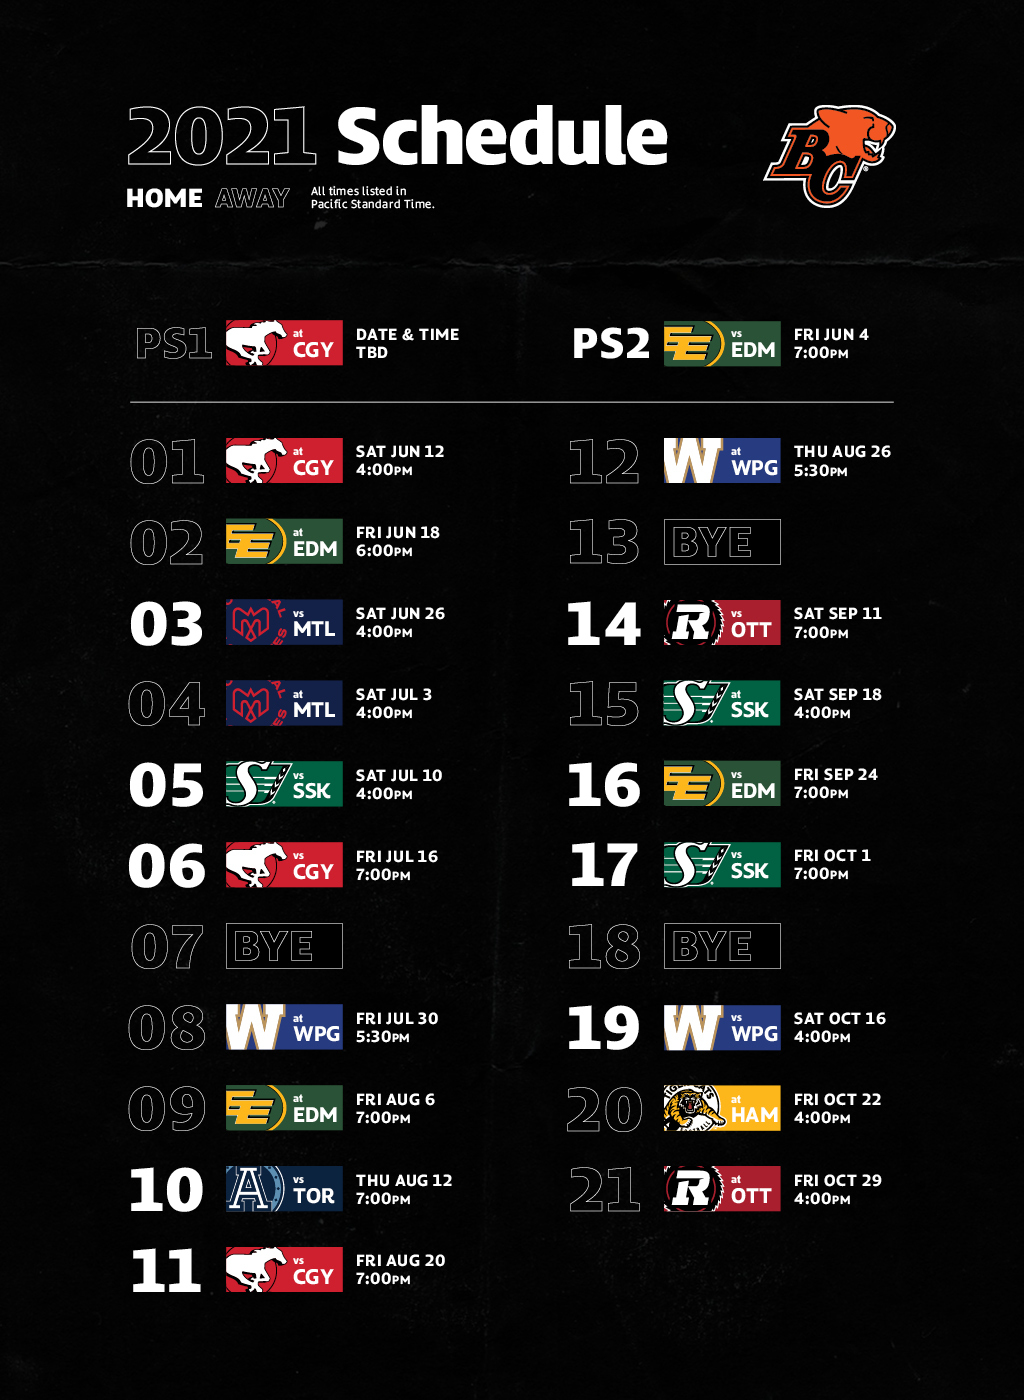 The BC Lions 2021 Schedule